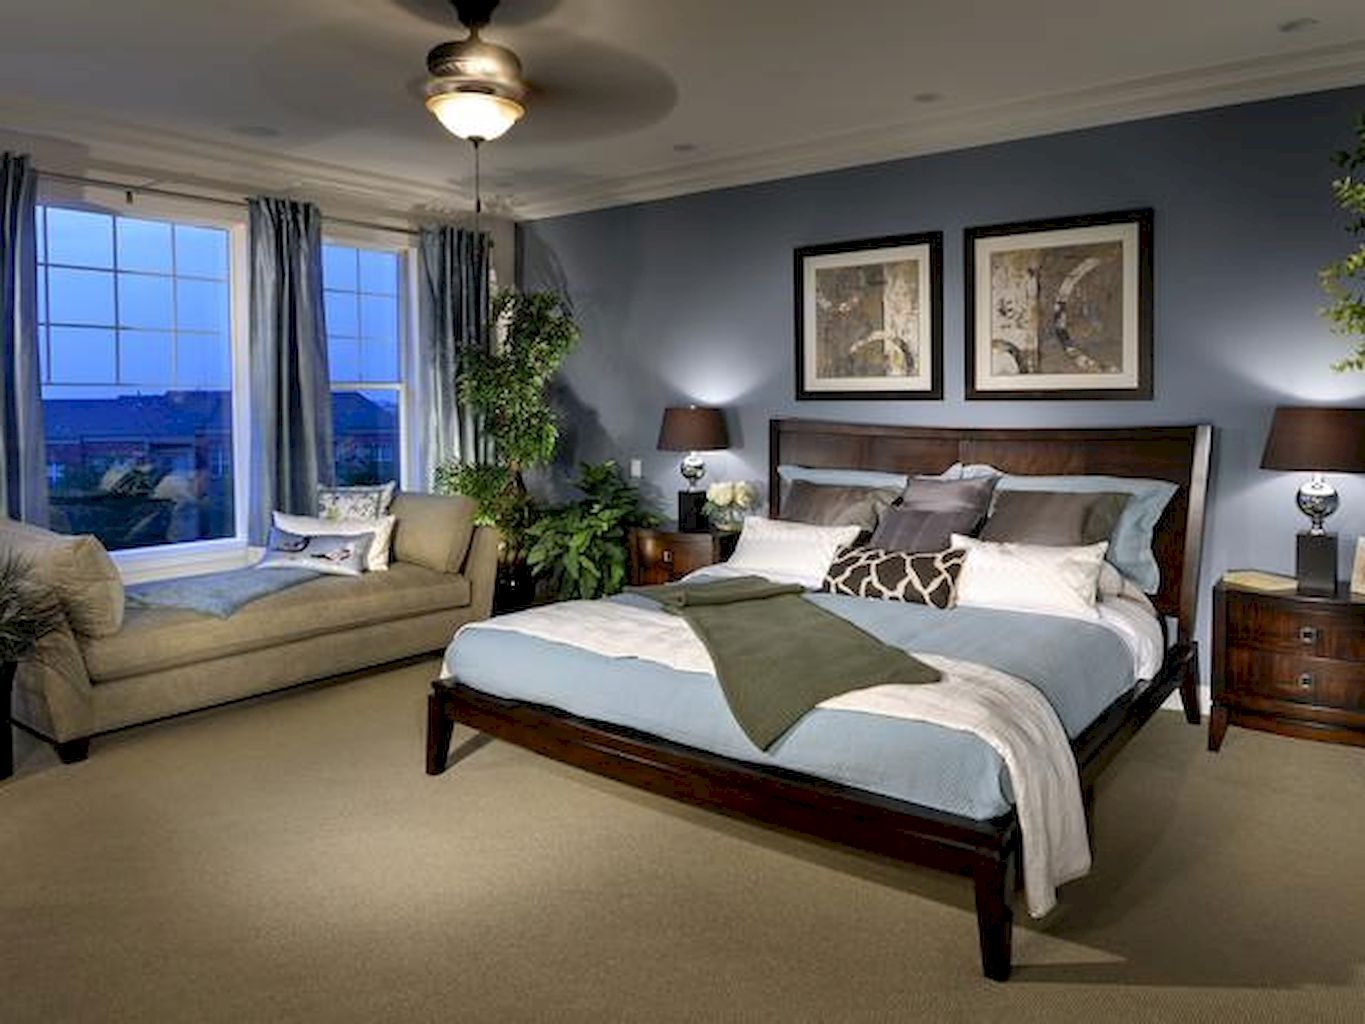 Large master bedroom decor ideas   Relaxing Master Bedroom Decor Ideas  Relaxing master bedroom